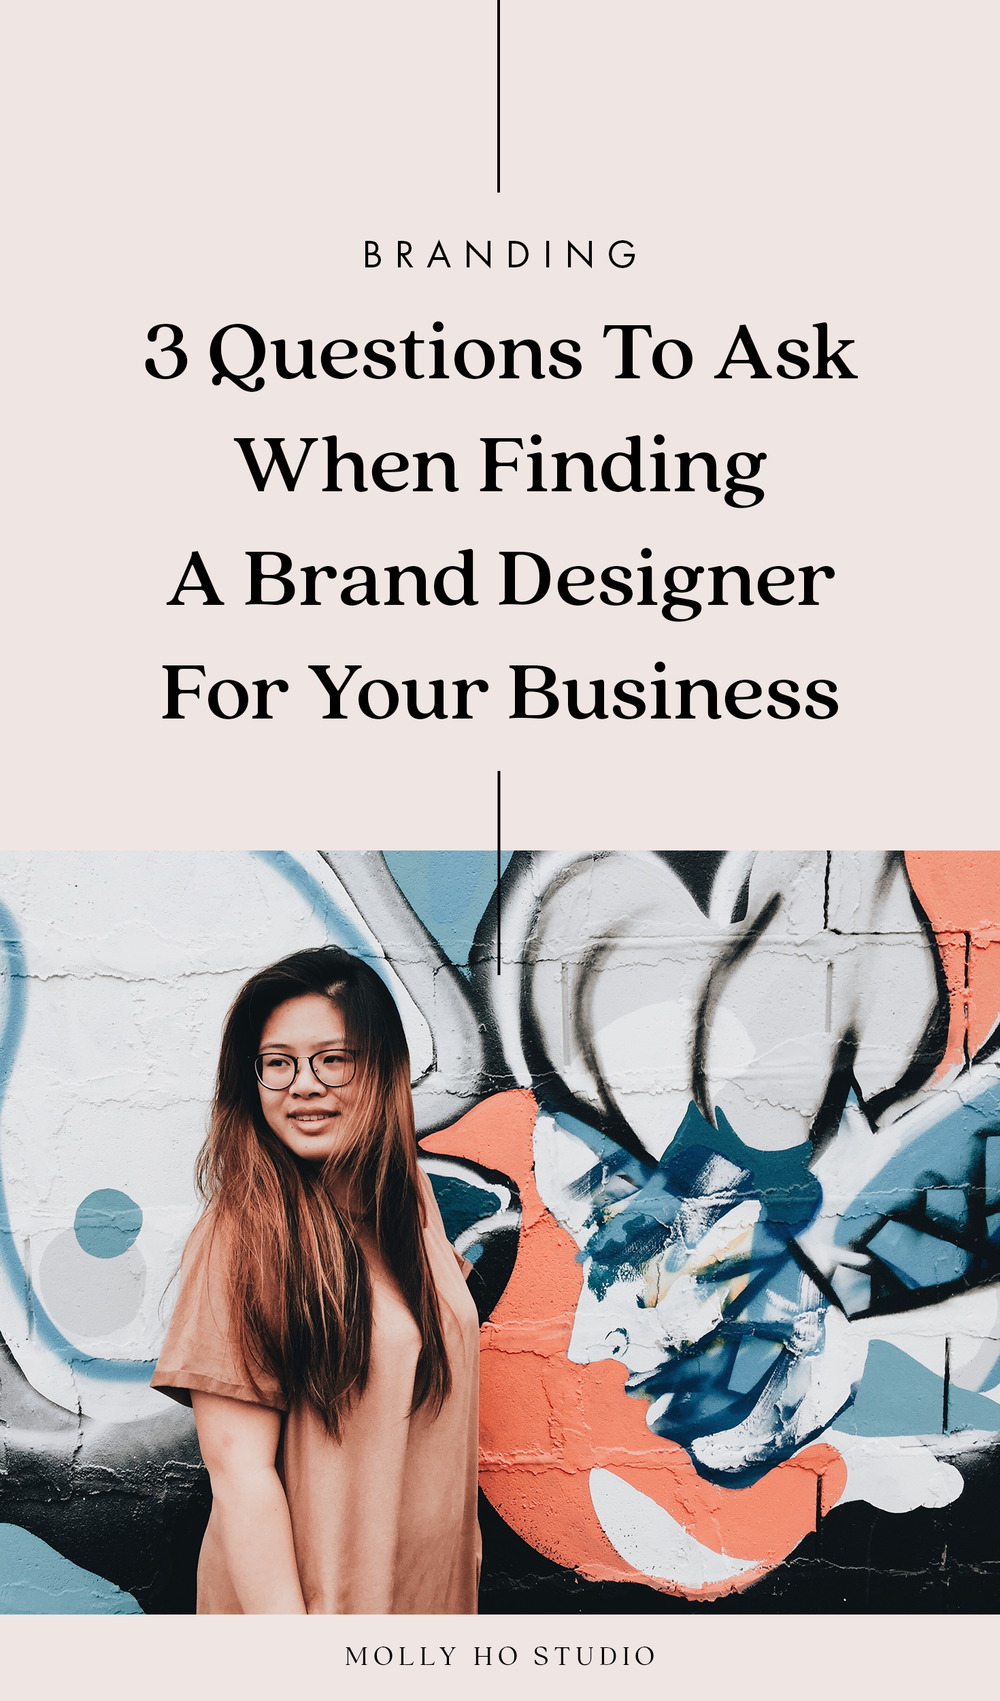 3 Questions To Ask When Finding A Brand Designer For Your Business | How To Find A Brand and Graphic Designer for Your Business |Branding Design Identity | Brand Design Process | Small Business Advice | Personal Branding for Creative Female Entrepreneurs | Digital Marketing and Social Media | Finding Your Ideal Client Avatar and Target Market | Creative Entrepreneurship | Branding and Business Tips | Molly Ho Studio